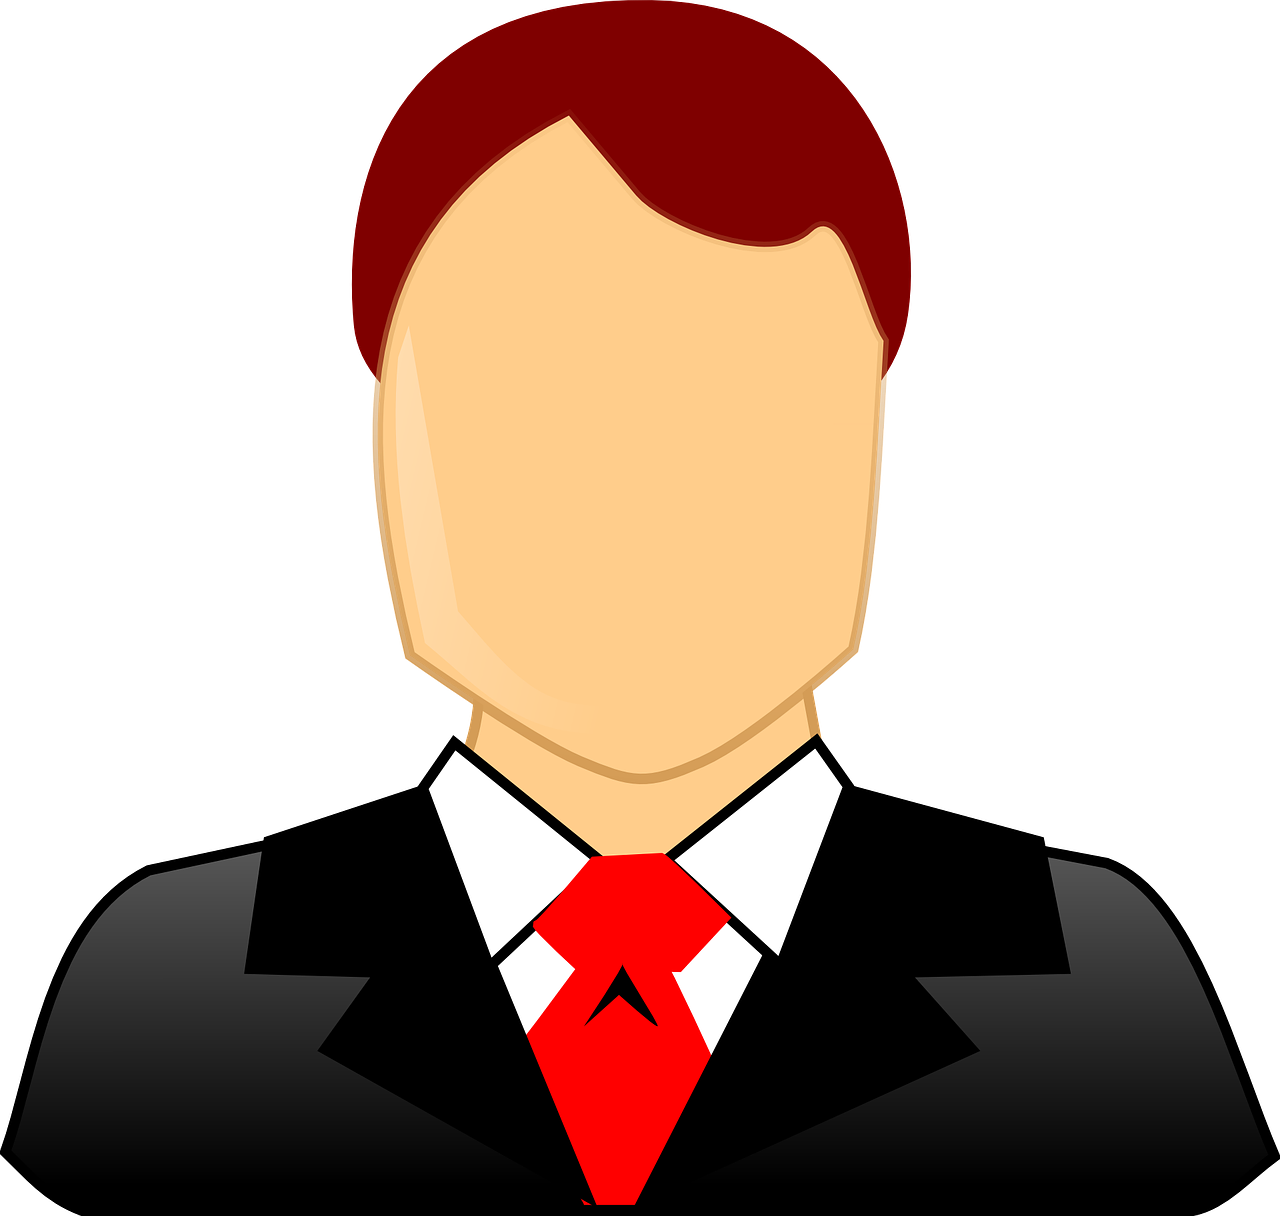 businessman, male, business